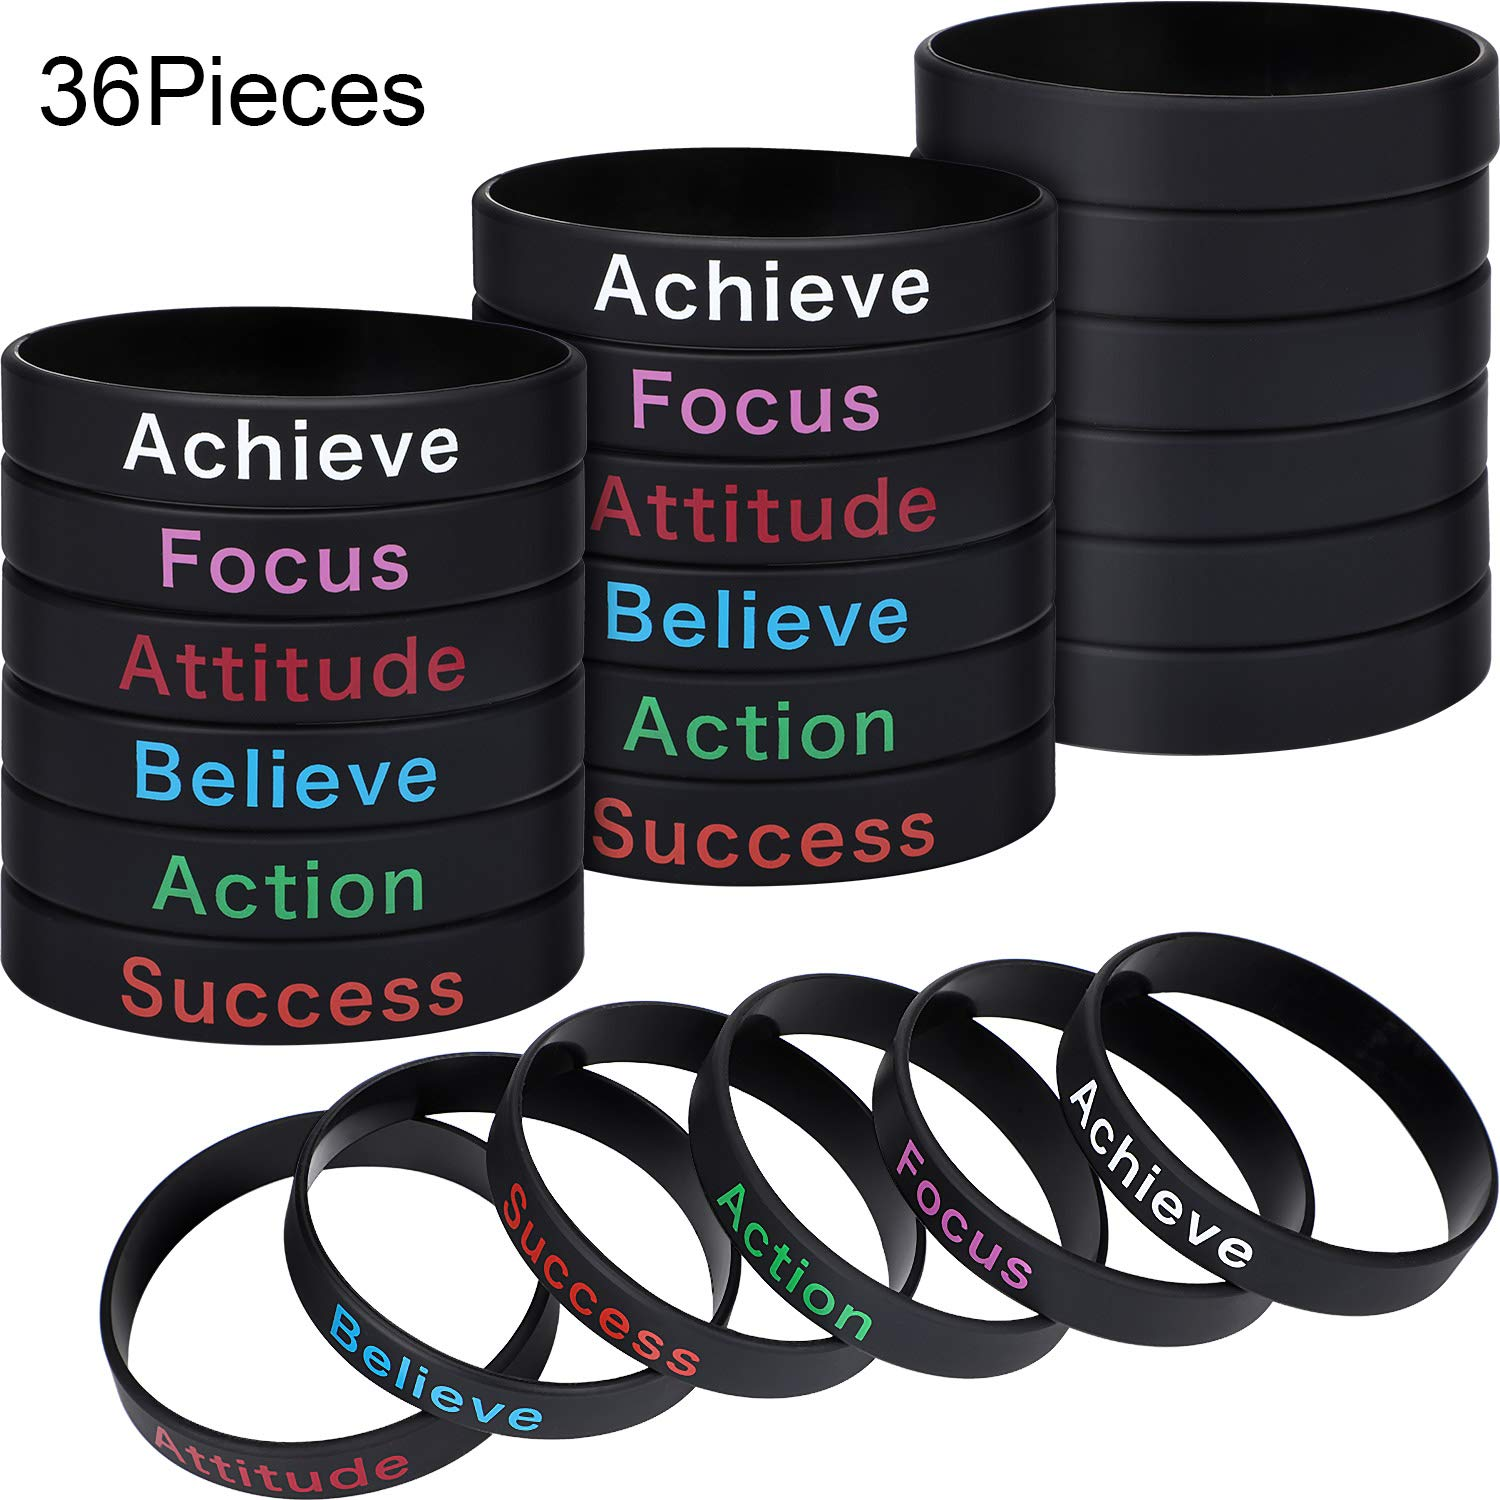 36 Pieces Inspirational Silicone Bracelets Motivational Rubber Wristbands Stretch Rubber Bracelets for Men and Women by Hicarer